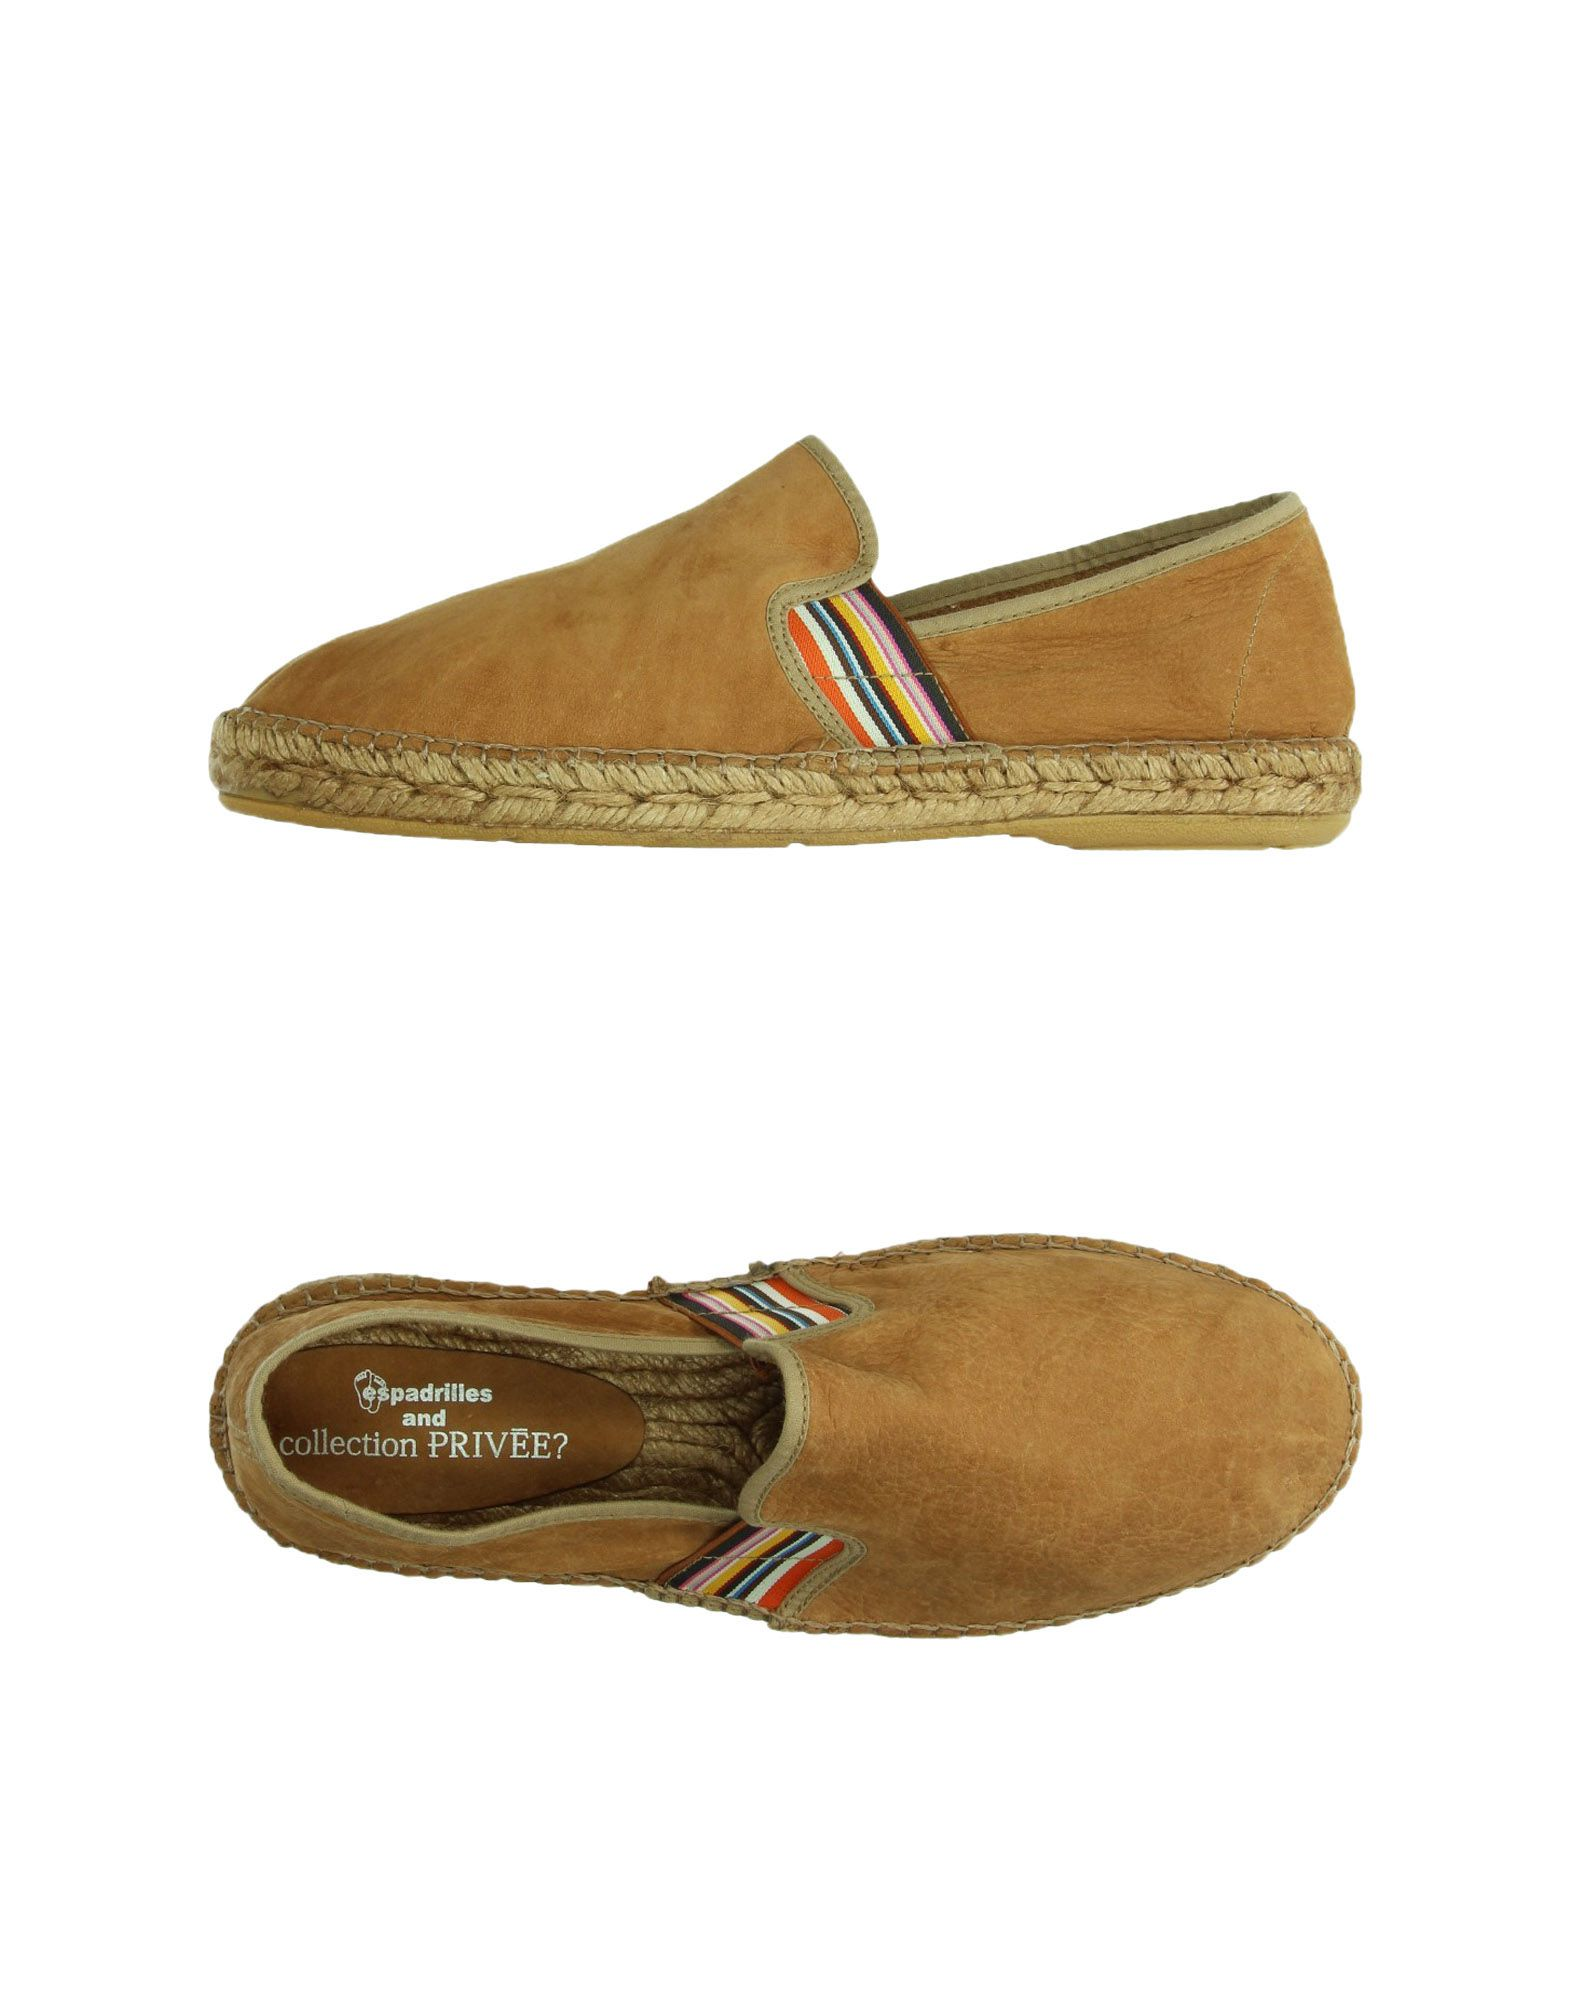 ESPADRILLES and COLLECTION PRIVĒE? Эспадрильи эспадрильи zenden collection zenden collection ze012agpre17